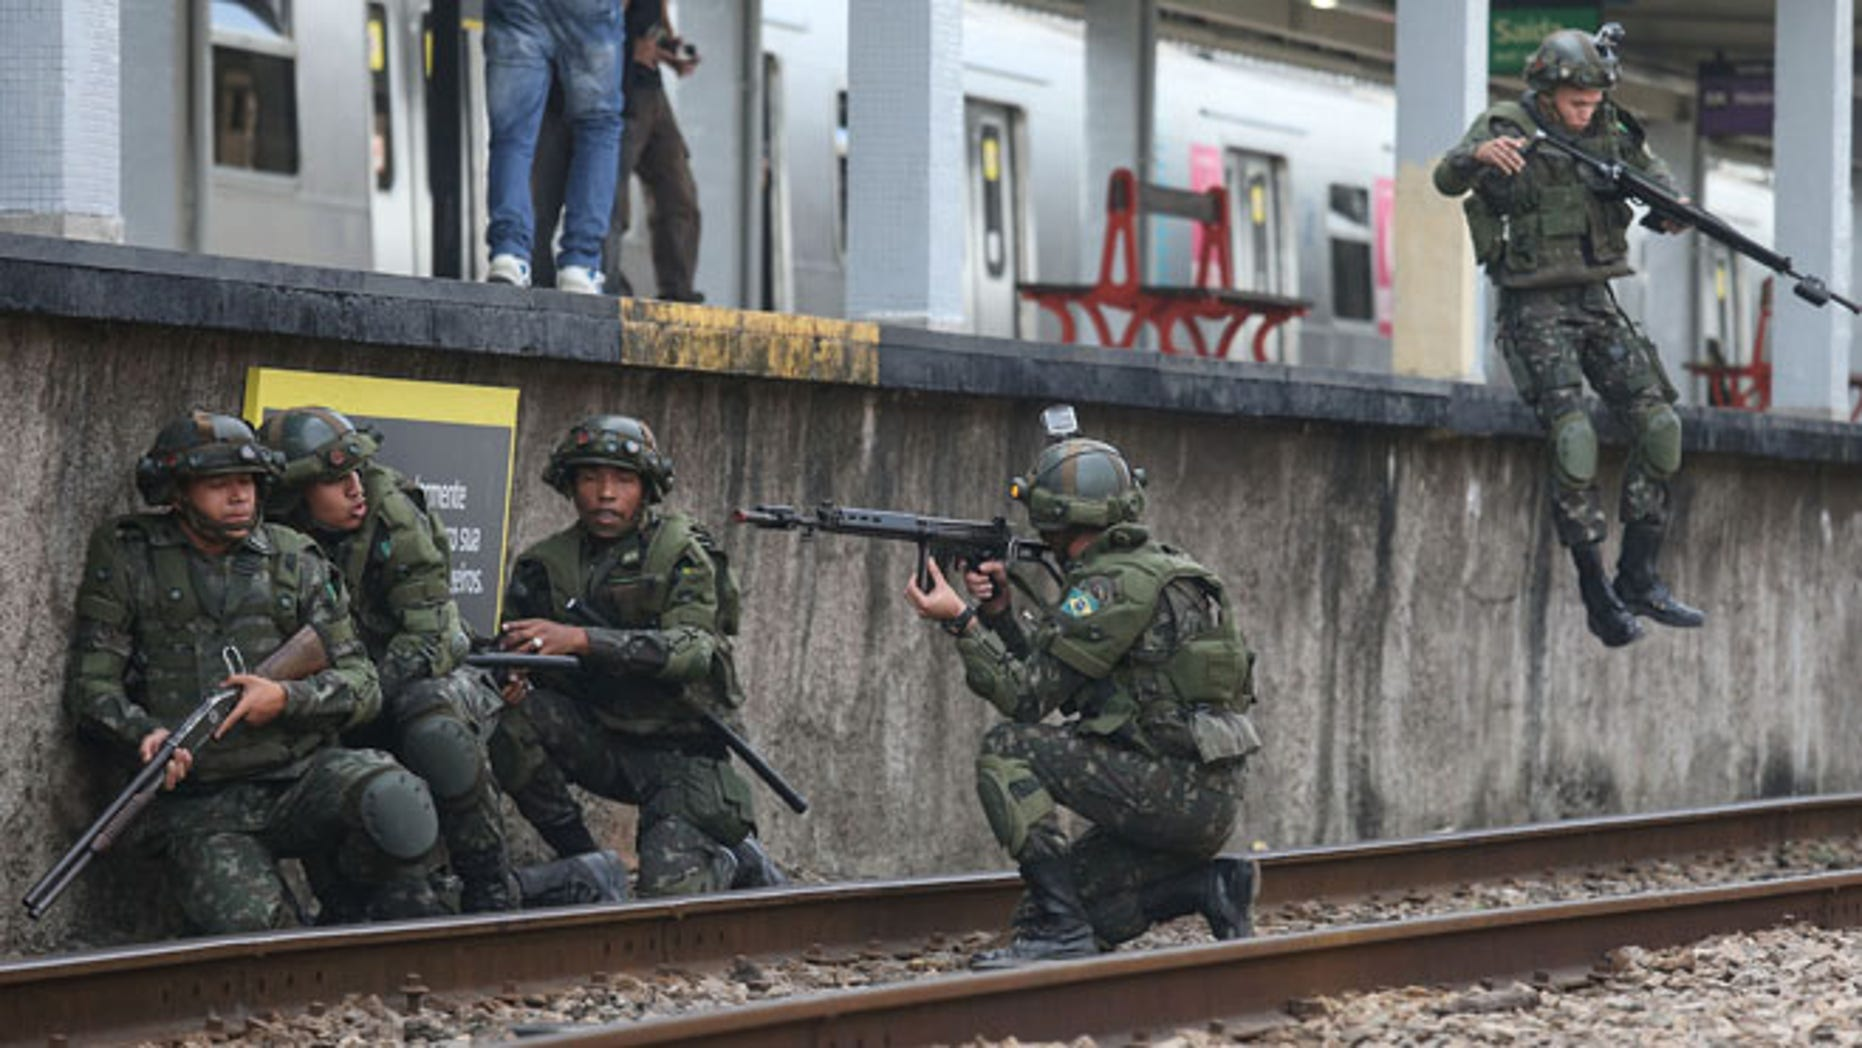 Brazilian soldiers conduct a counterterrorism drill simulating an attack at the Deodoro train station on July 16, 2016 in Rio de Janeiro, Brazil. Brazil announced yesterday it was bolstering security for the Rio 2016 Olympic Games following the truck attack in Nice, France, which killed at least 84 people. Deodoro is one of four main venue locations for the upcoming Olympics which begin August 5.  (Photo by Mario Tama/Getty Images)